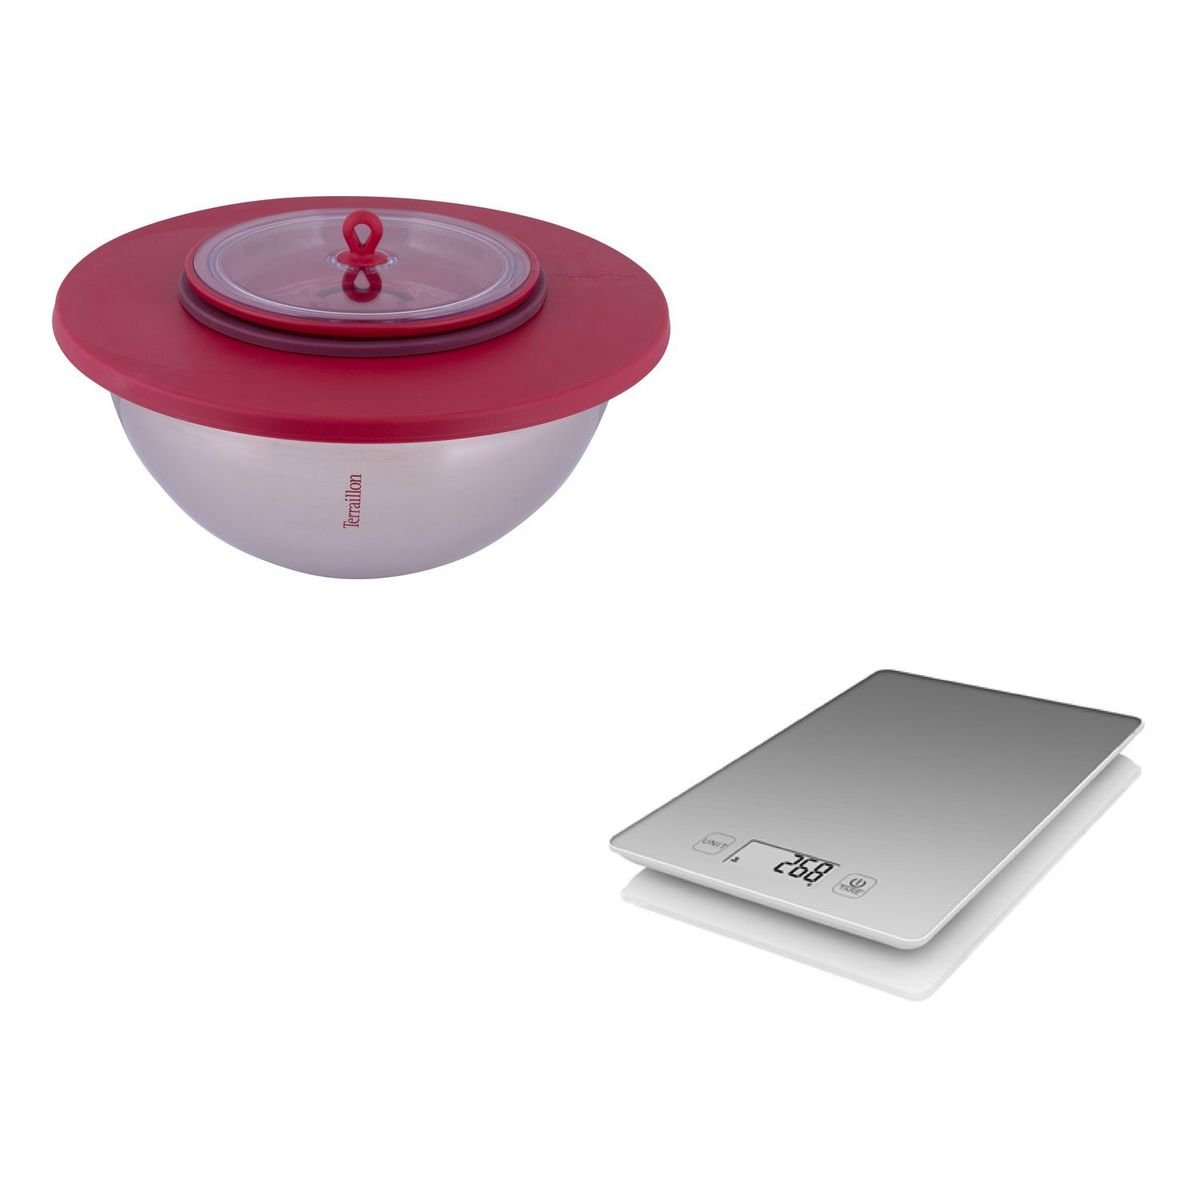 Kit bol + balance de cuisine - MICHALAK + FIRST